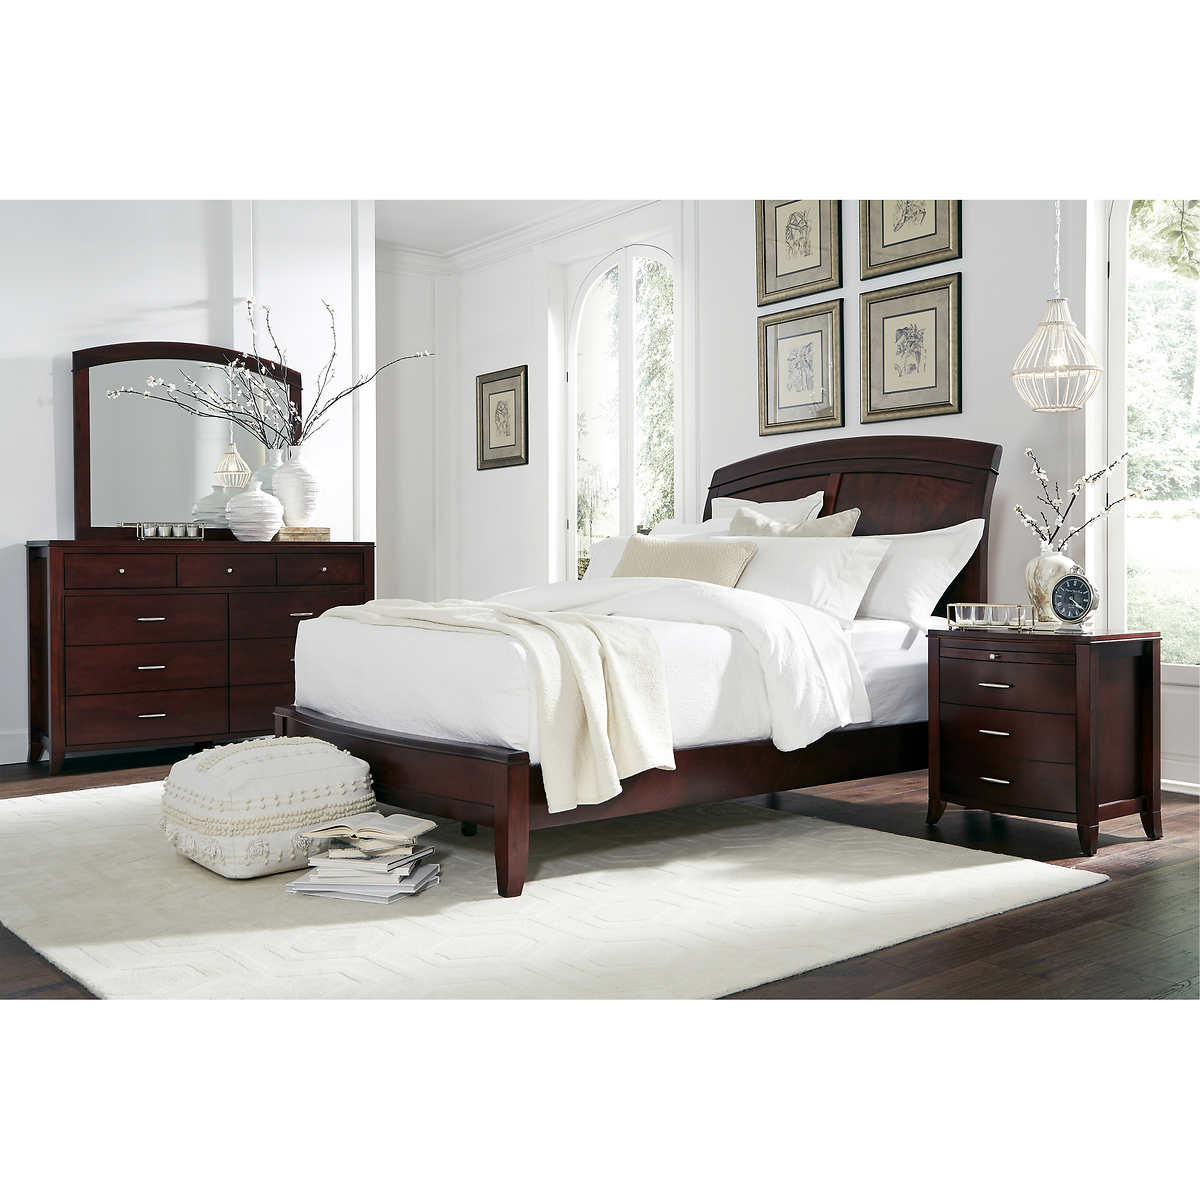 Bevelle 5-piece King Bedroom Set